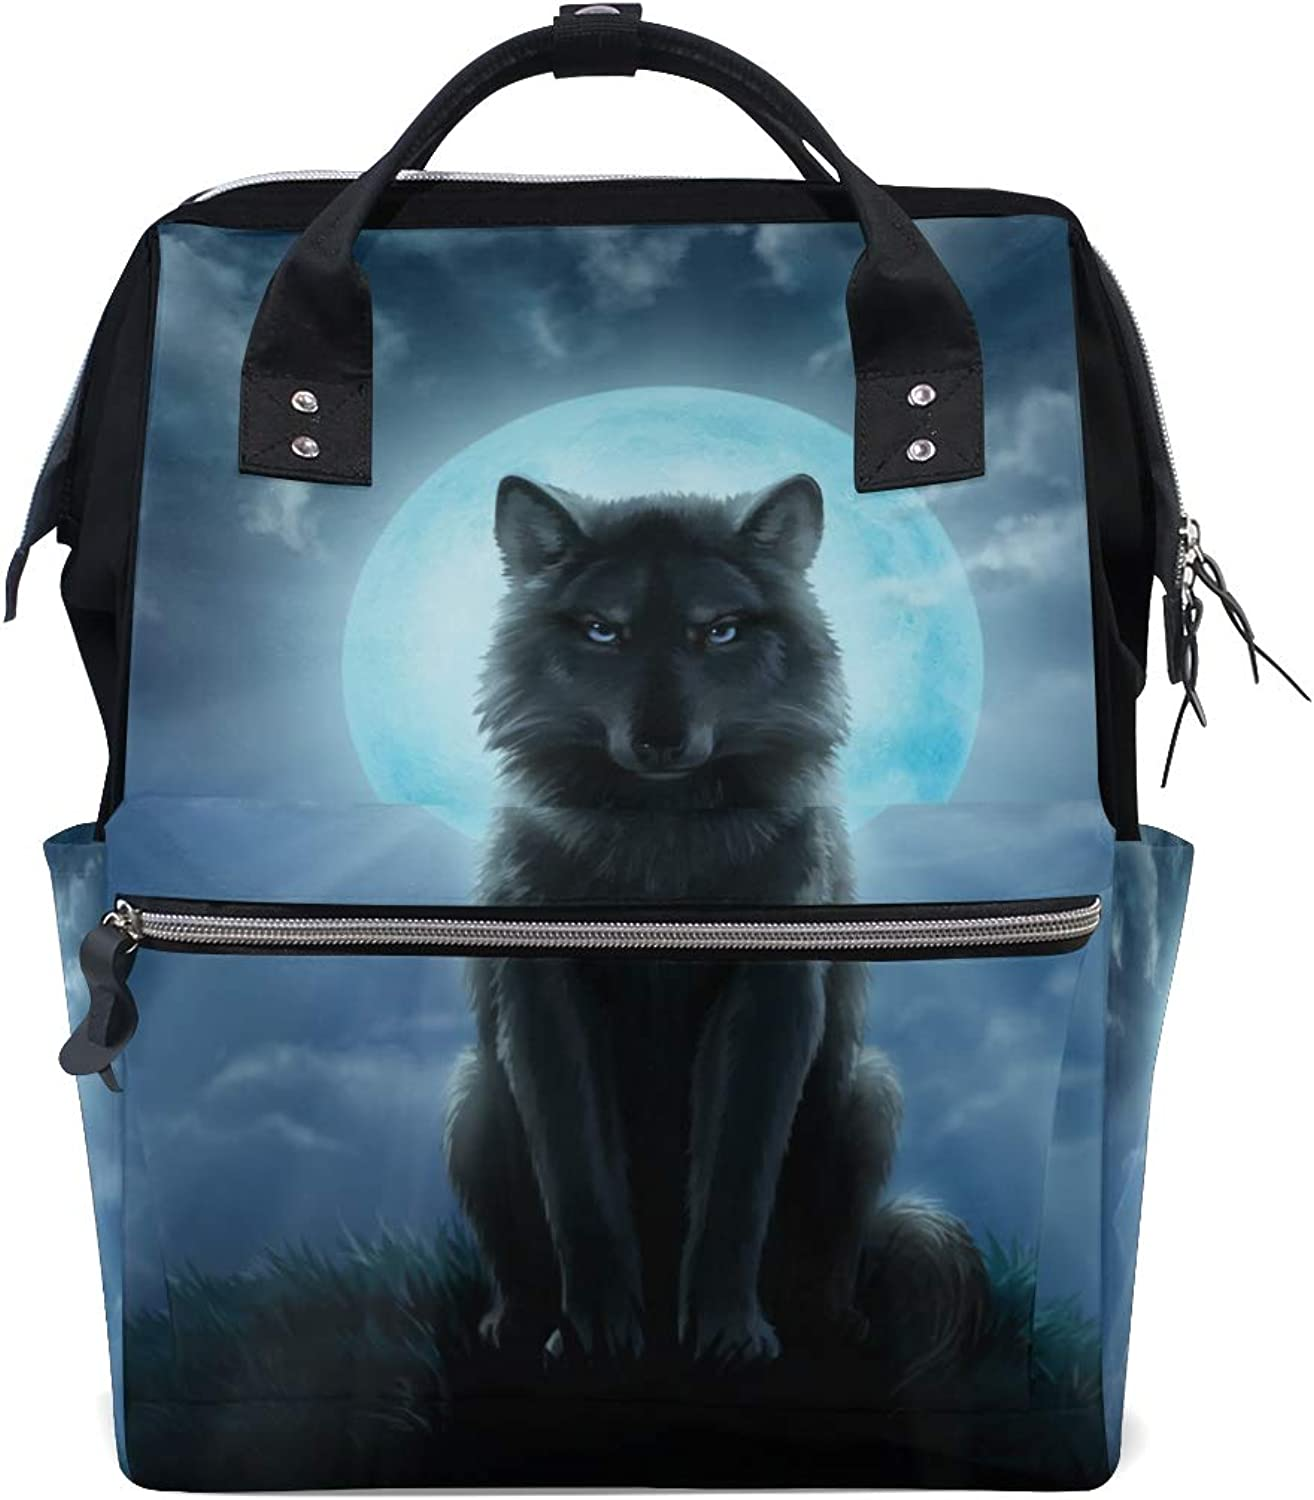 ColourLife Diaper bag Backpack Moon Night Wolf Tote Bag Casual Daypack Multifunctional Nappy Bags